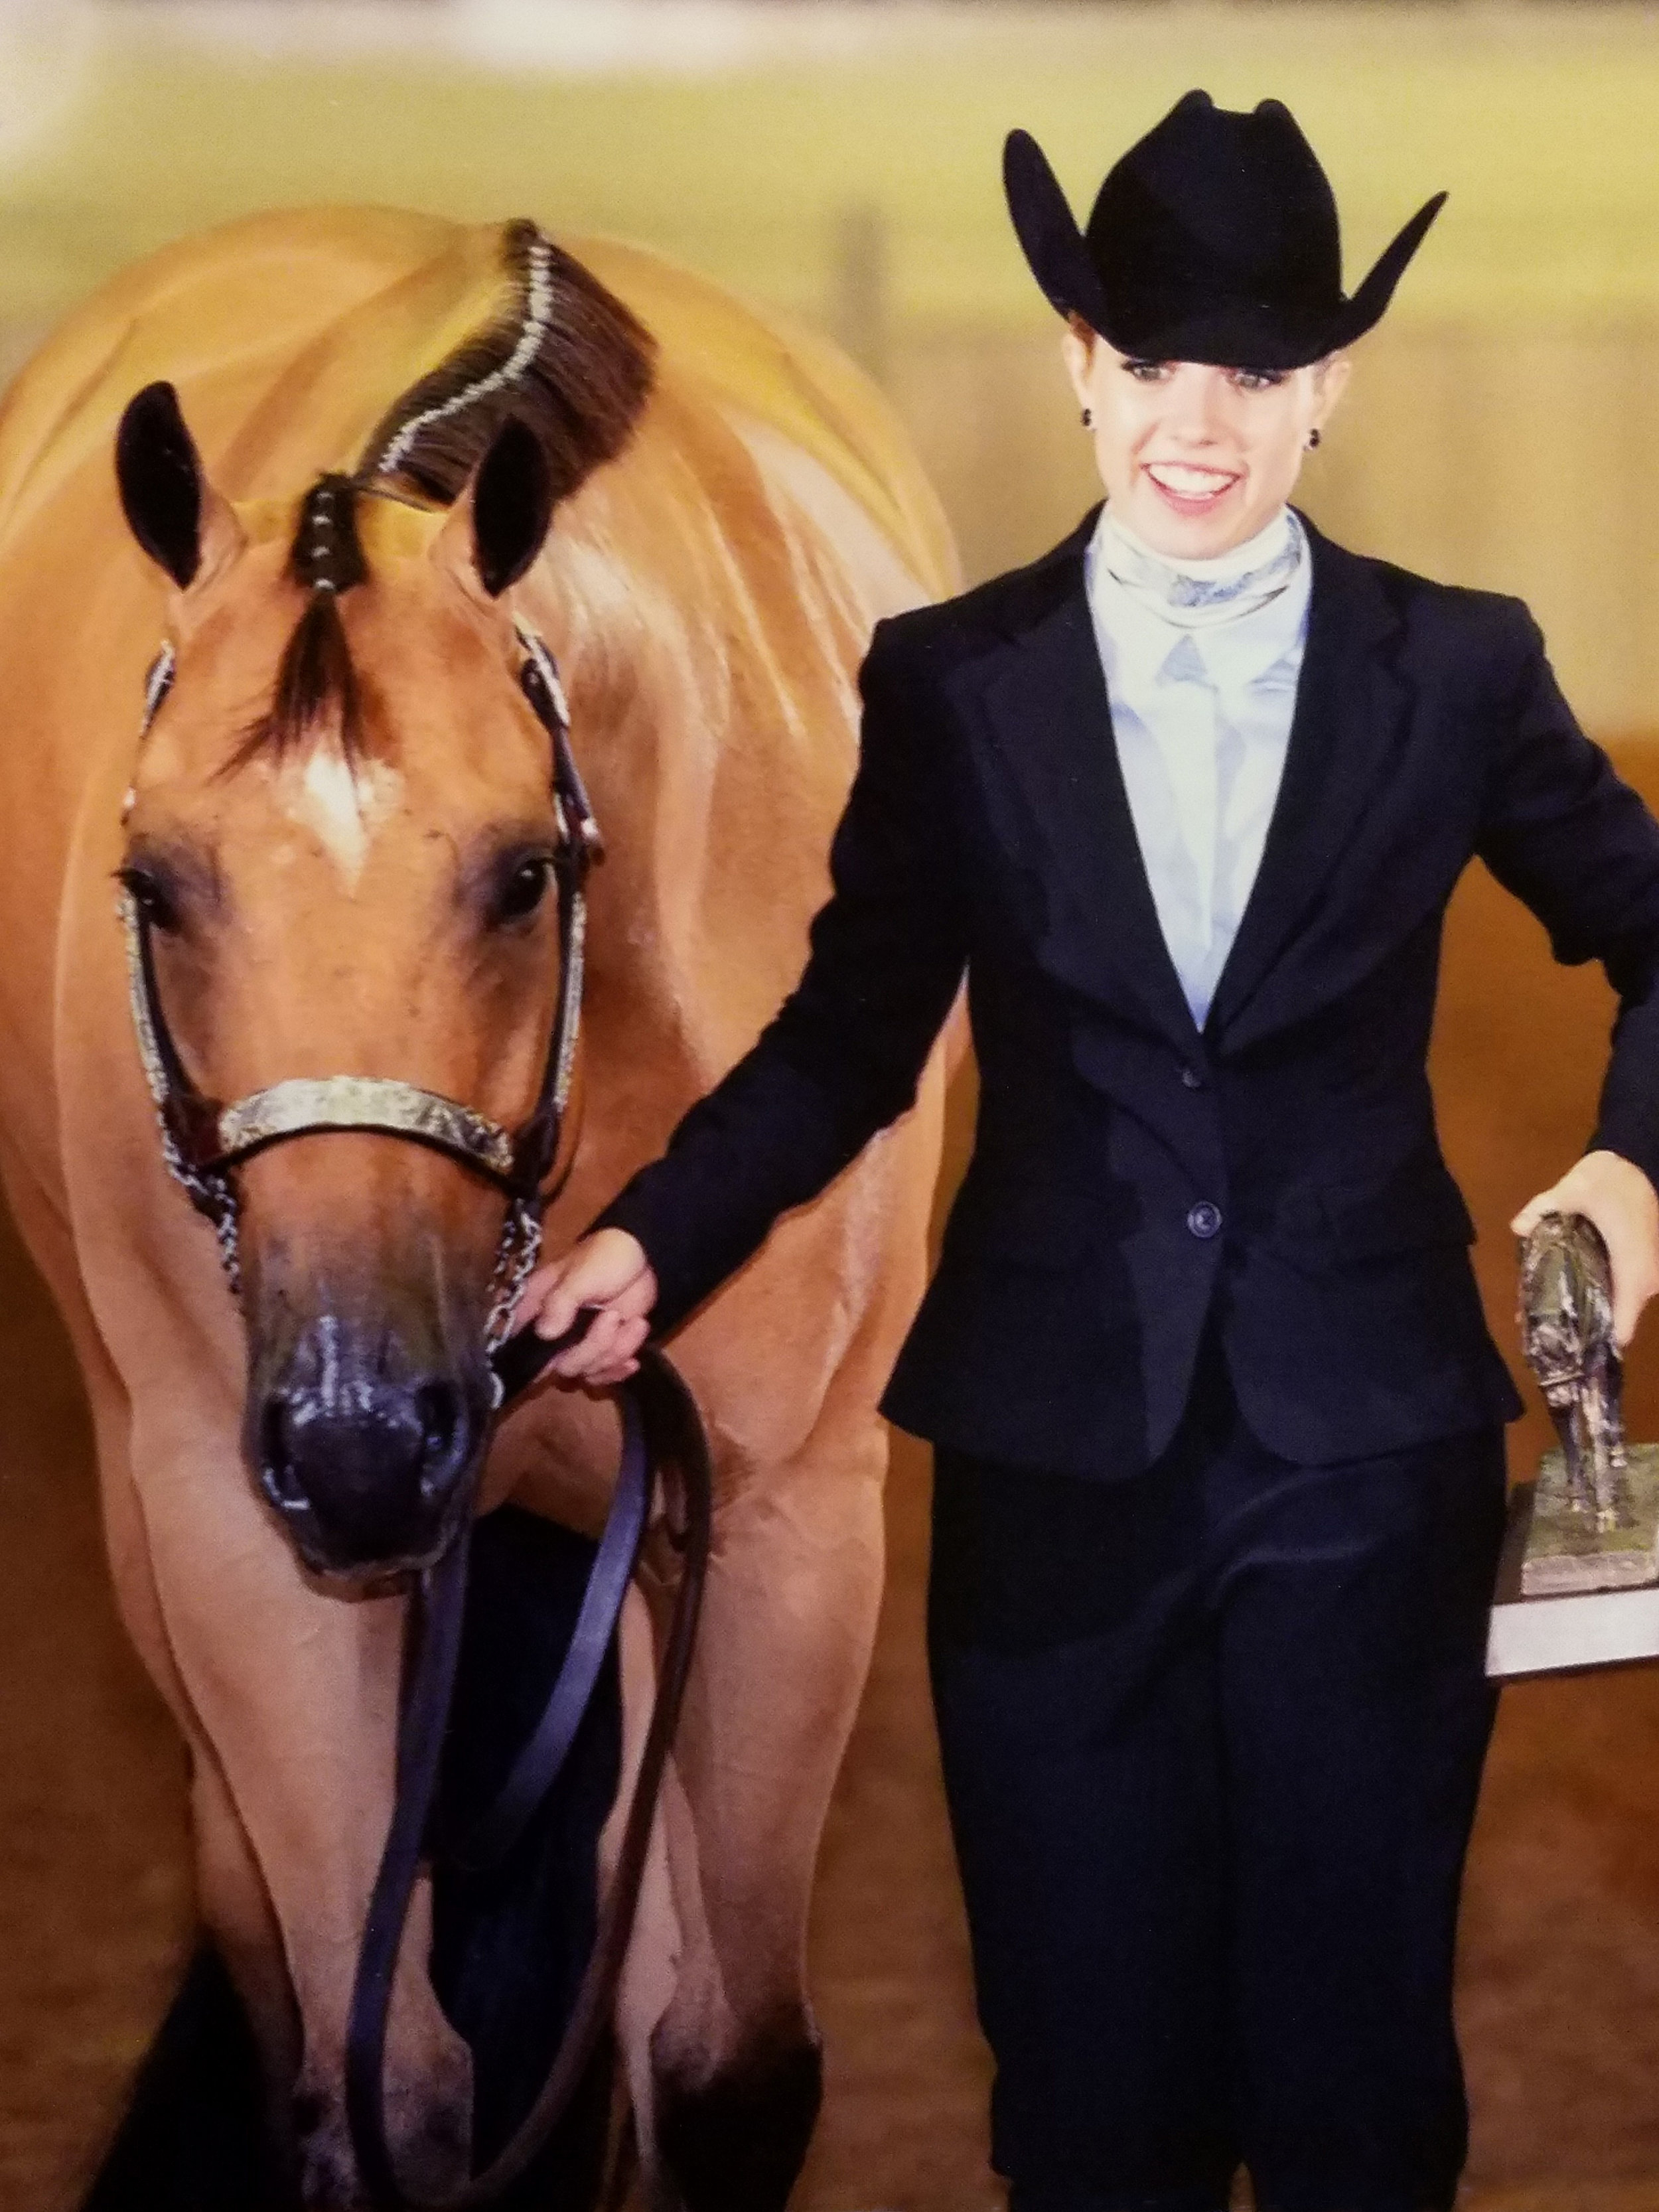 Cara-with-horse-and-trophy.jpg